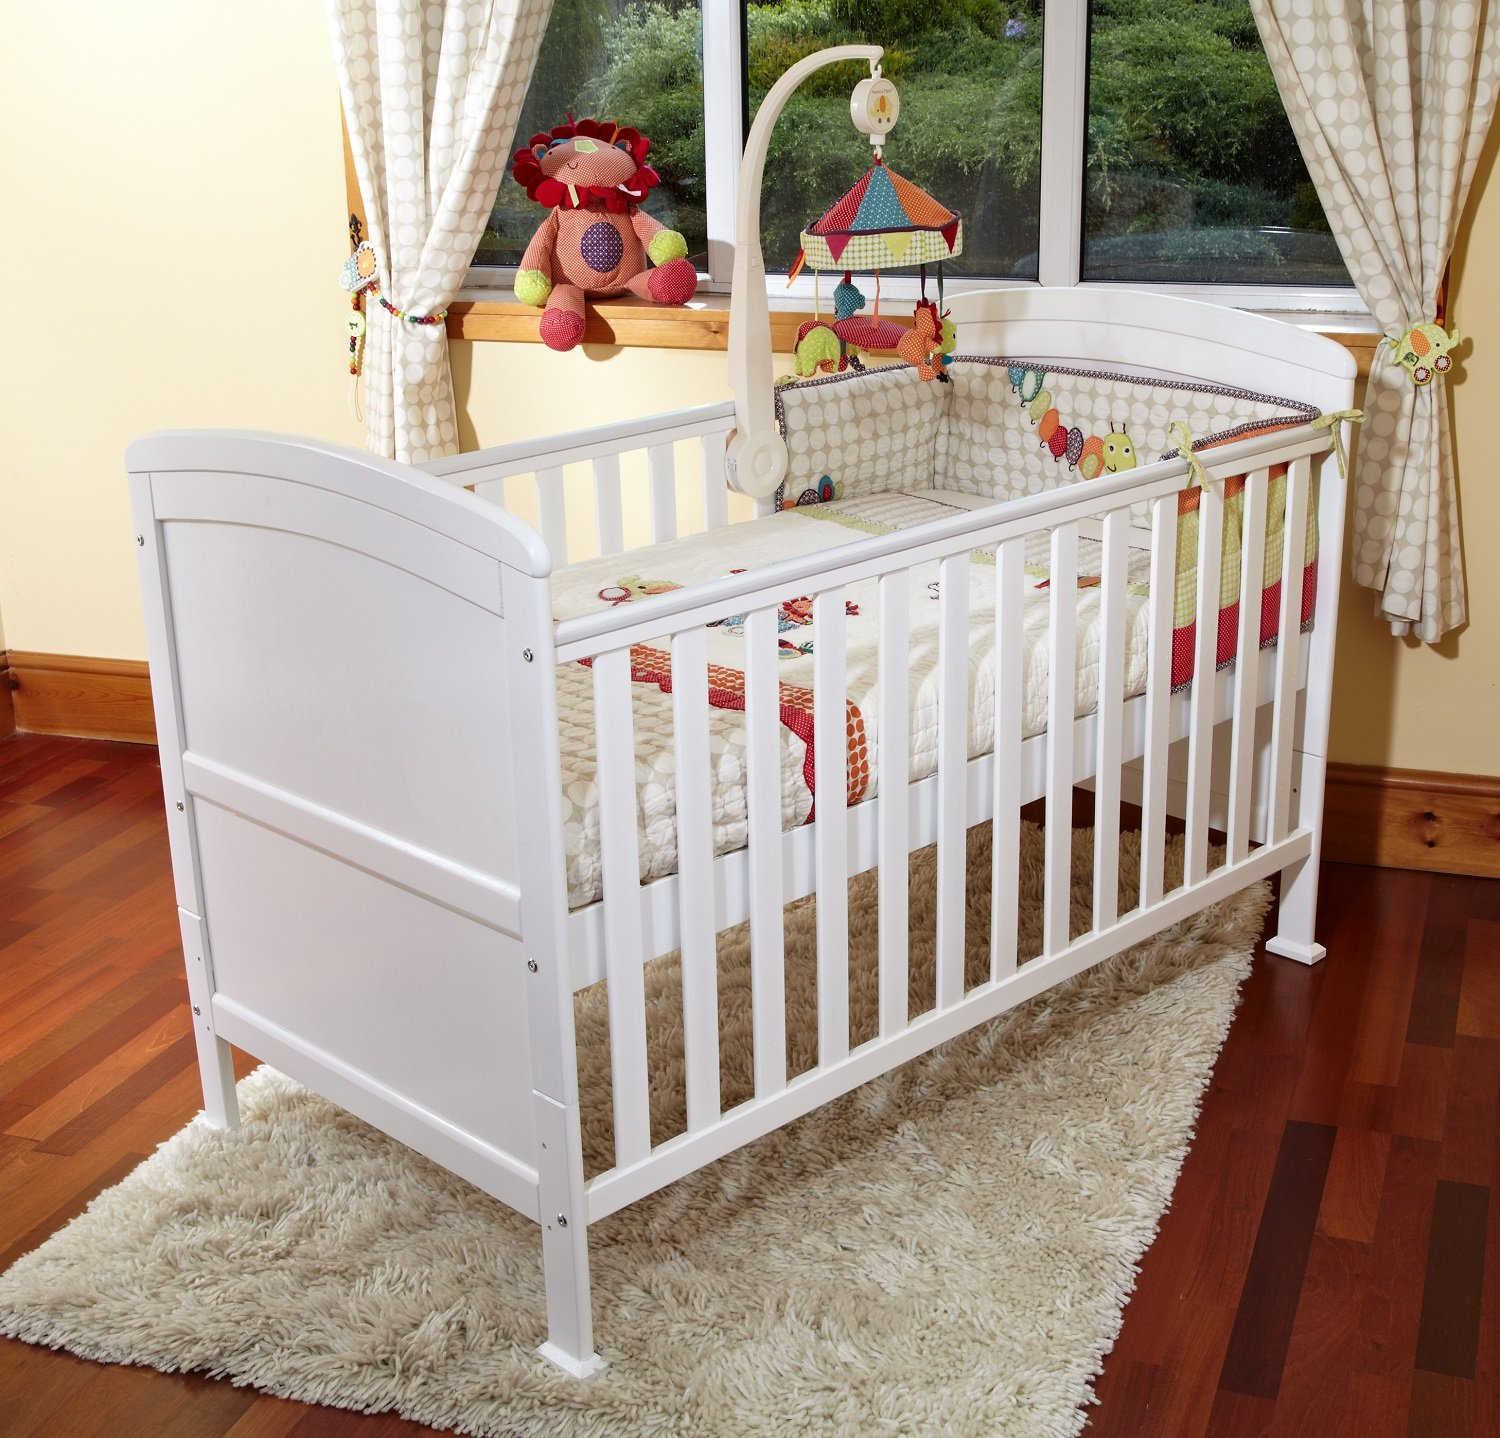 POPPY'S PLAYGORUND NEW BABY PENELOPE LUXURY COT BED & SAFETY SPRUNG MATTRESS-COTBED/JUNIOR BED - WHITE Poppy's Playground